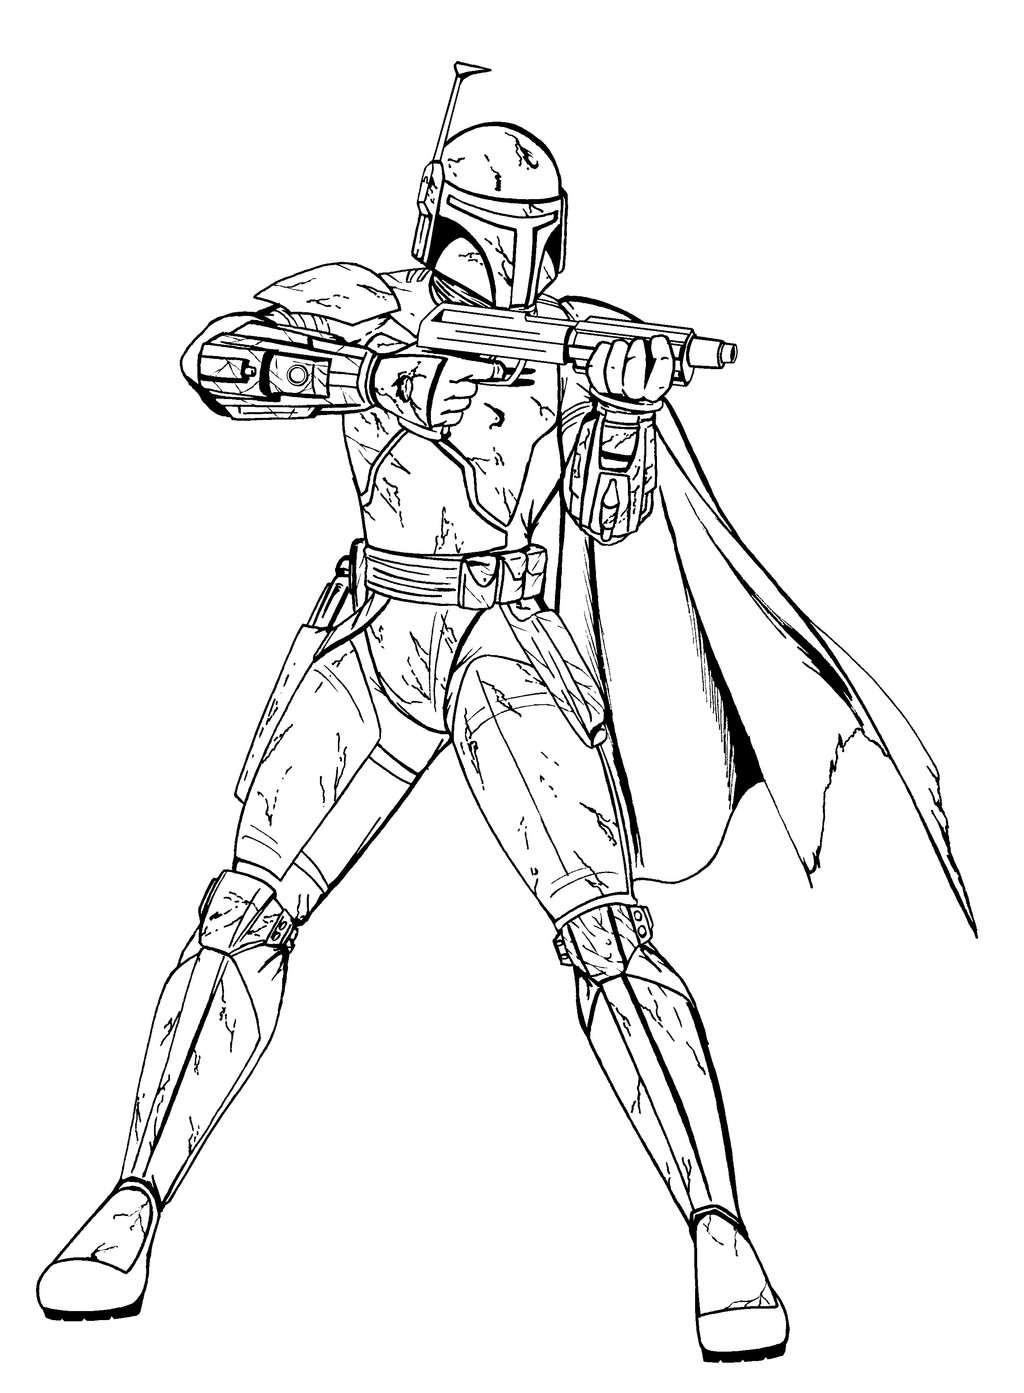 star wars print out coloring pages free printable star wars coloring pages free printable coloring print star out wars pages